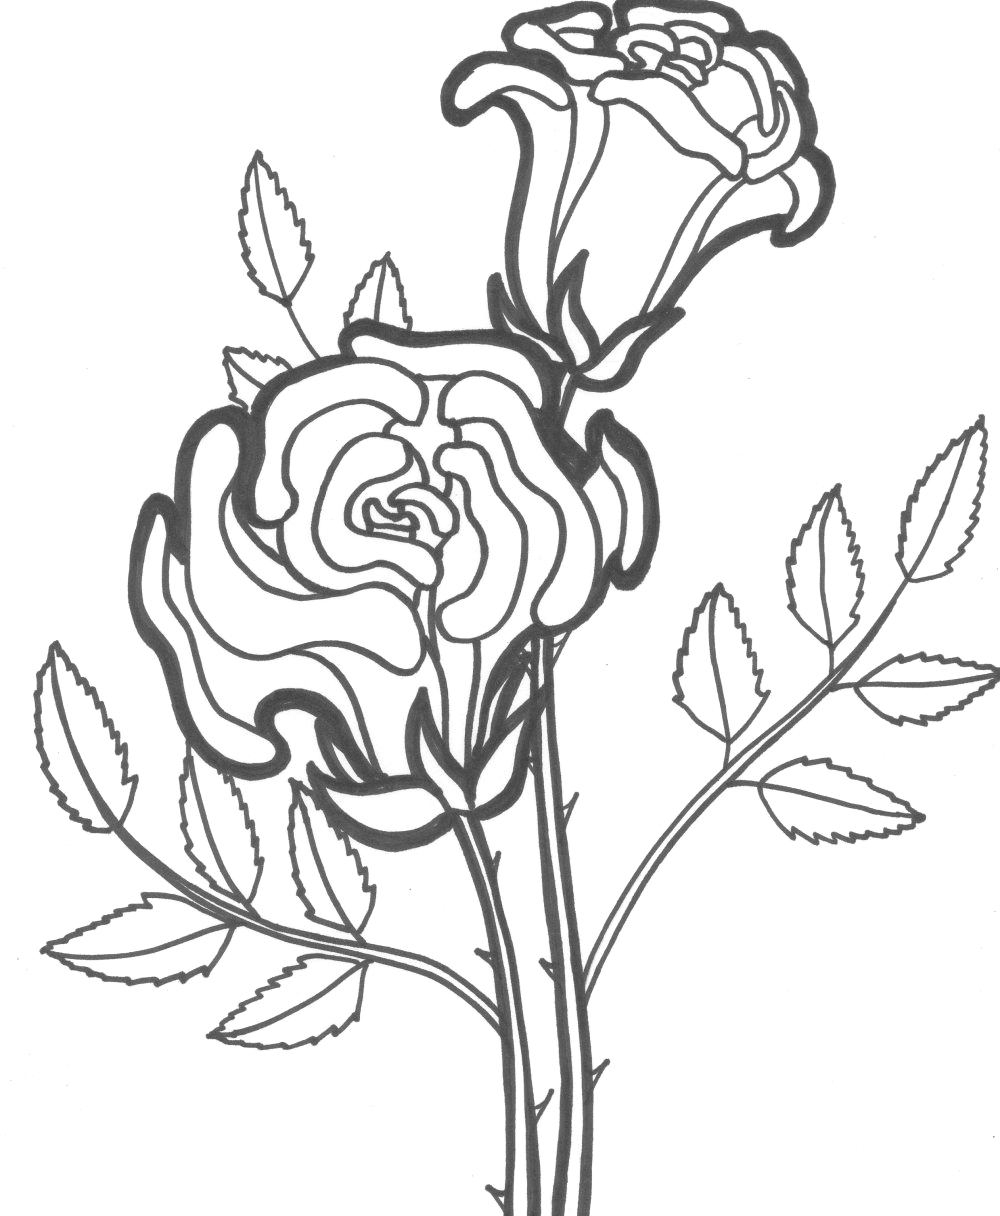 rose for coloring rose bud coloring pages at getdrawings free download rose for coloring